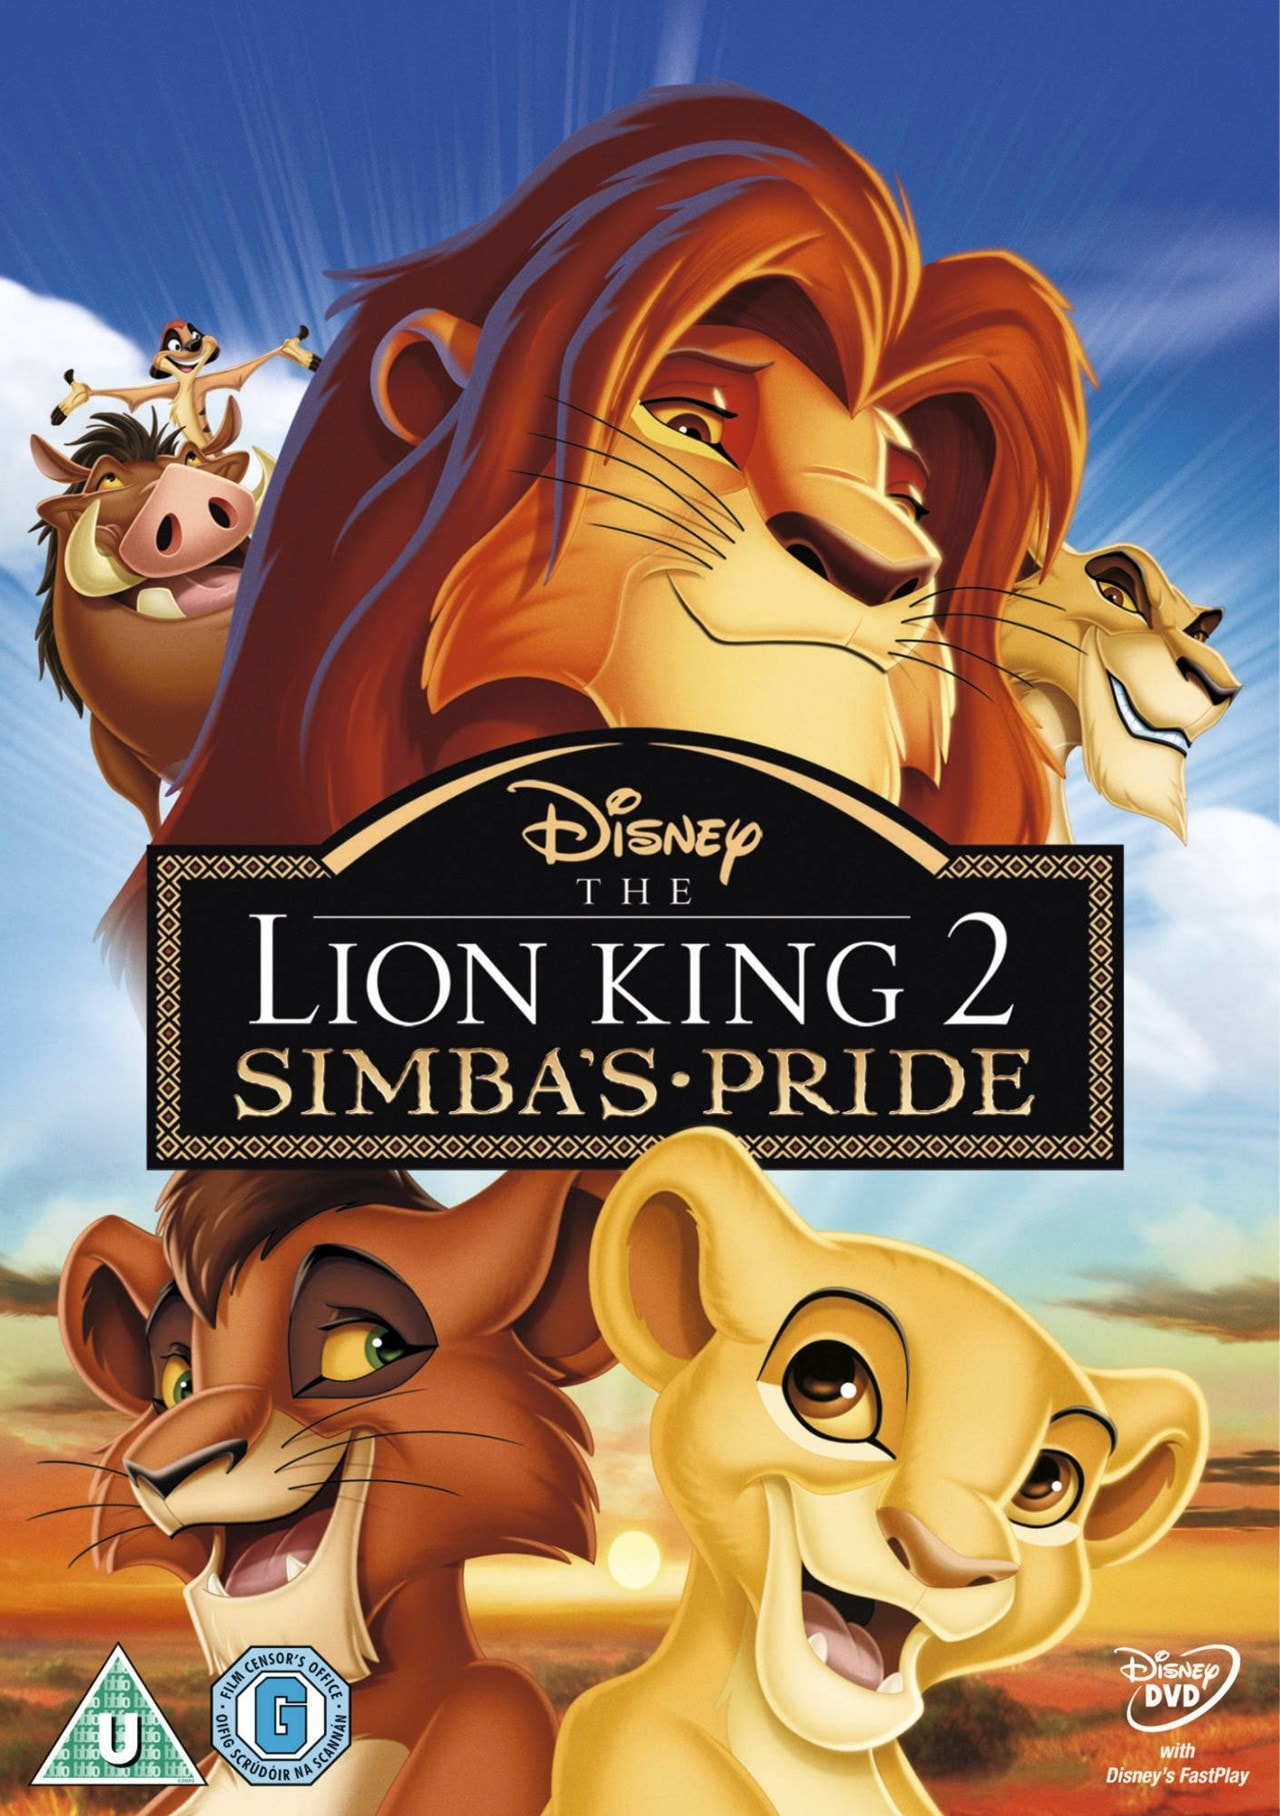 The Lion King 2 - Simba's Pride - 1